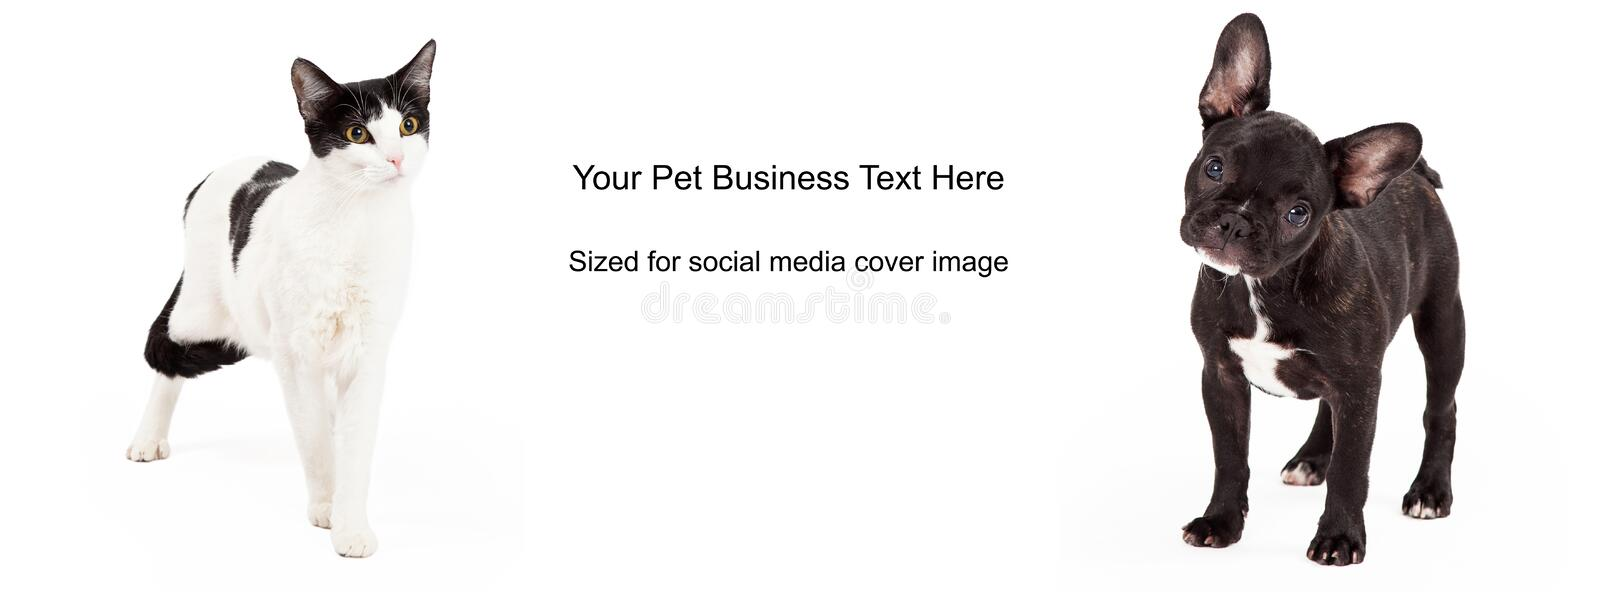 Black and White Dog Cat Cover Photo. A dog and a cat with black and white fur standing against a white background. Image cropped to the size of a social media stock image